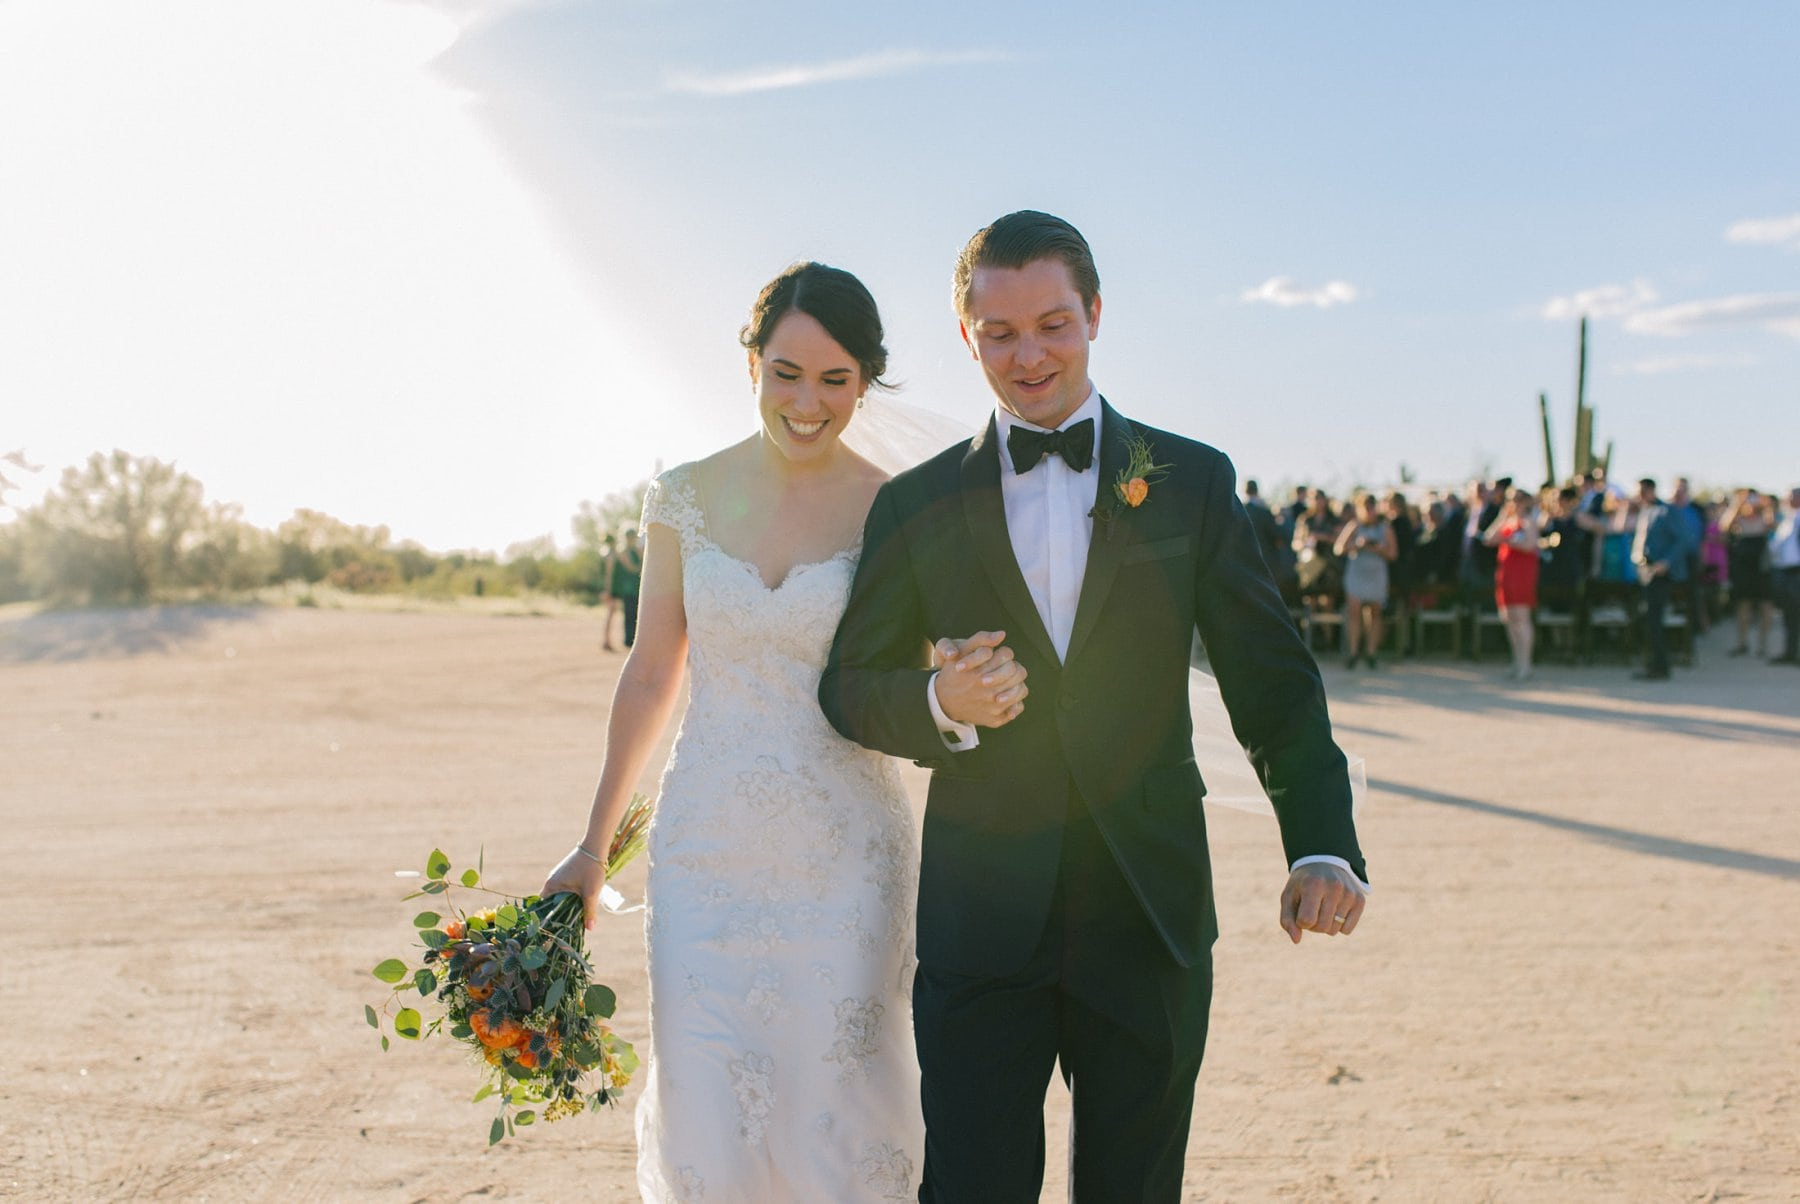 Arizona desert wedding just married Desert Foothills barn